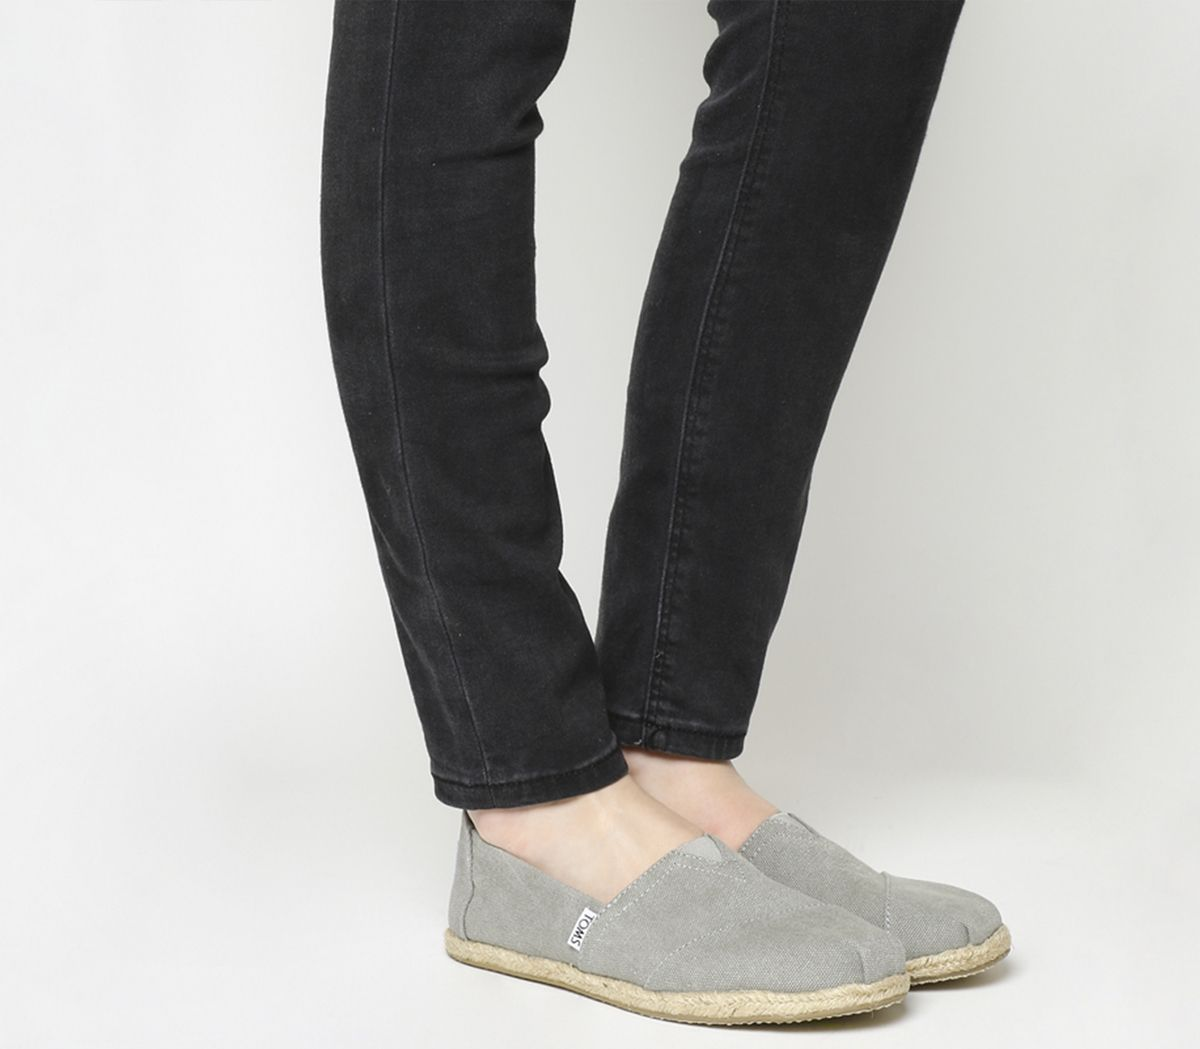 969acad9ff Toms Seasonal Classic Slip On Drizzle Grey Suede Rope Sole - Flats